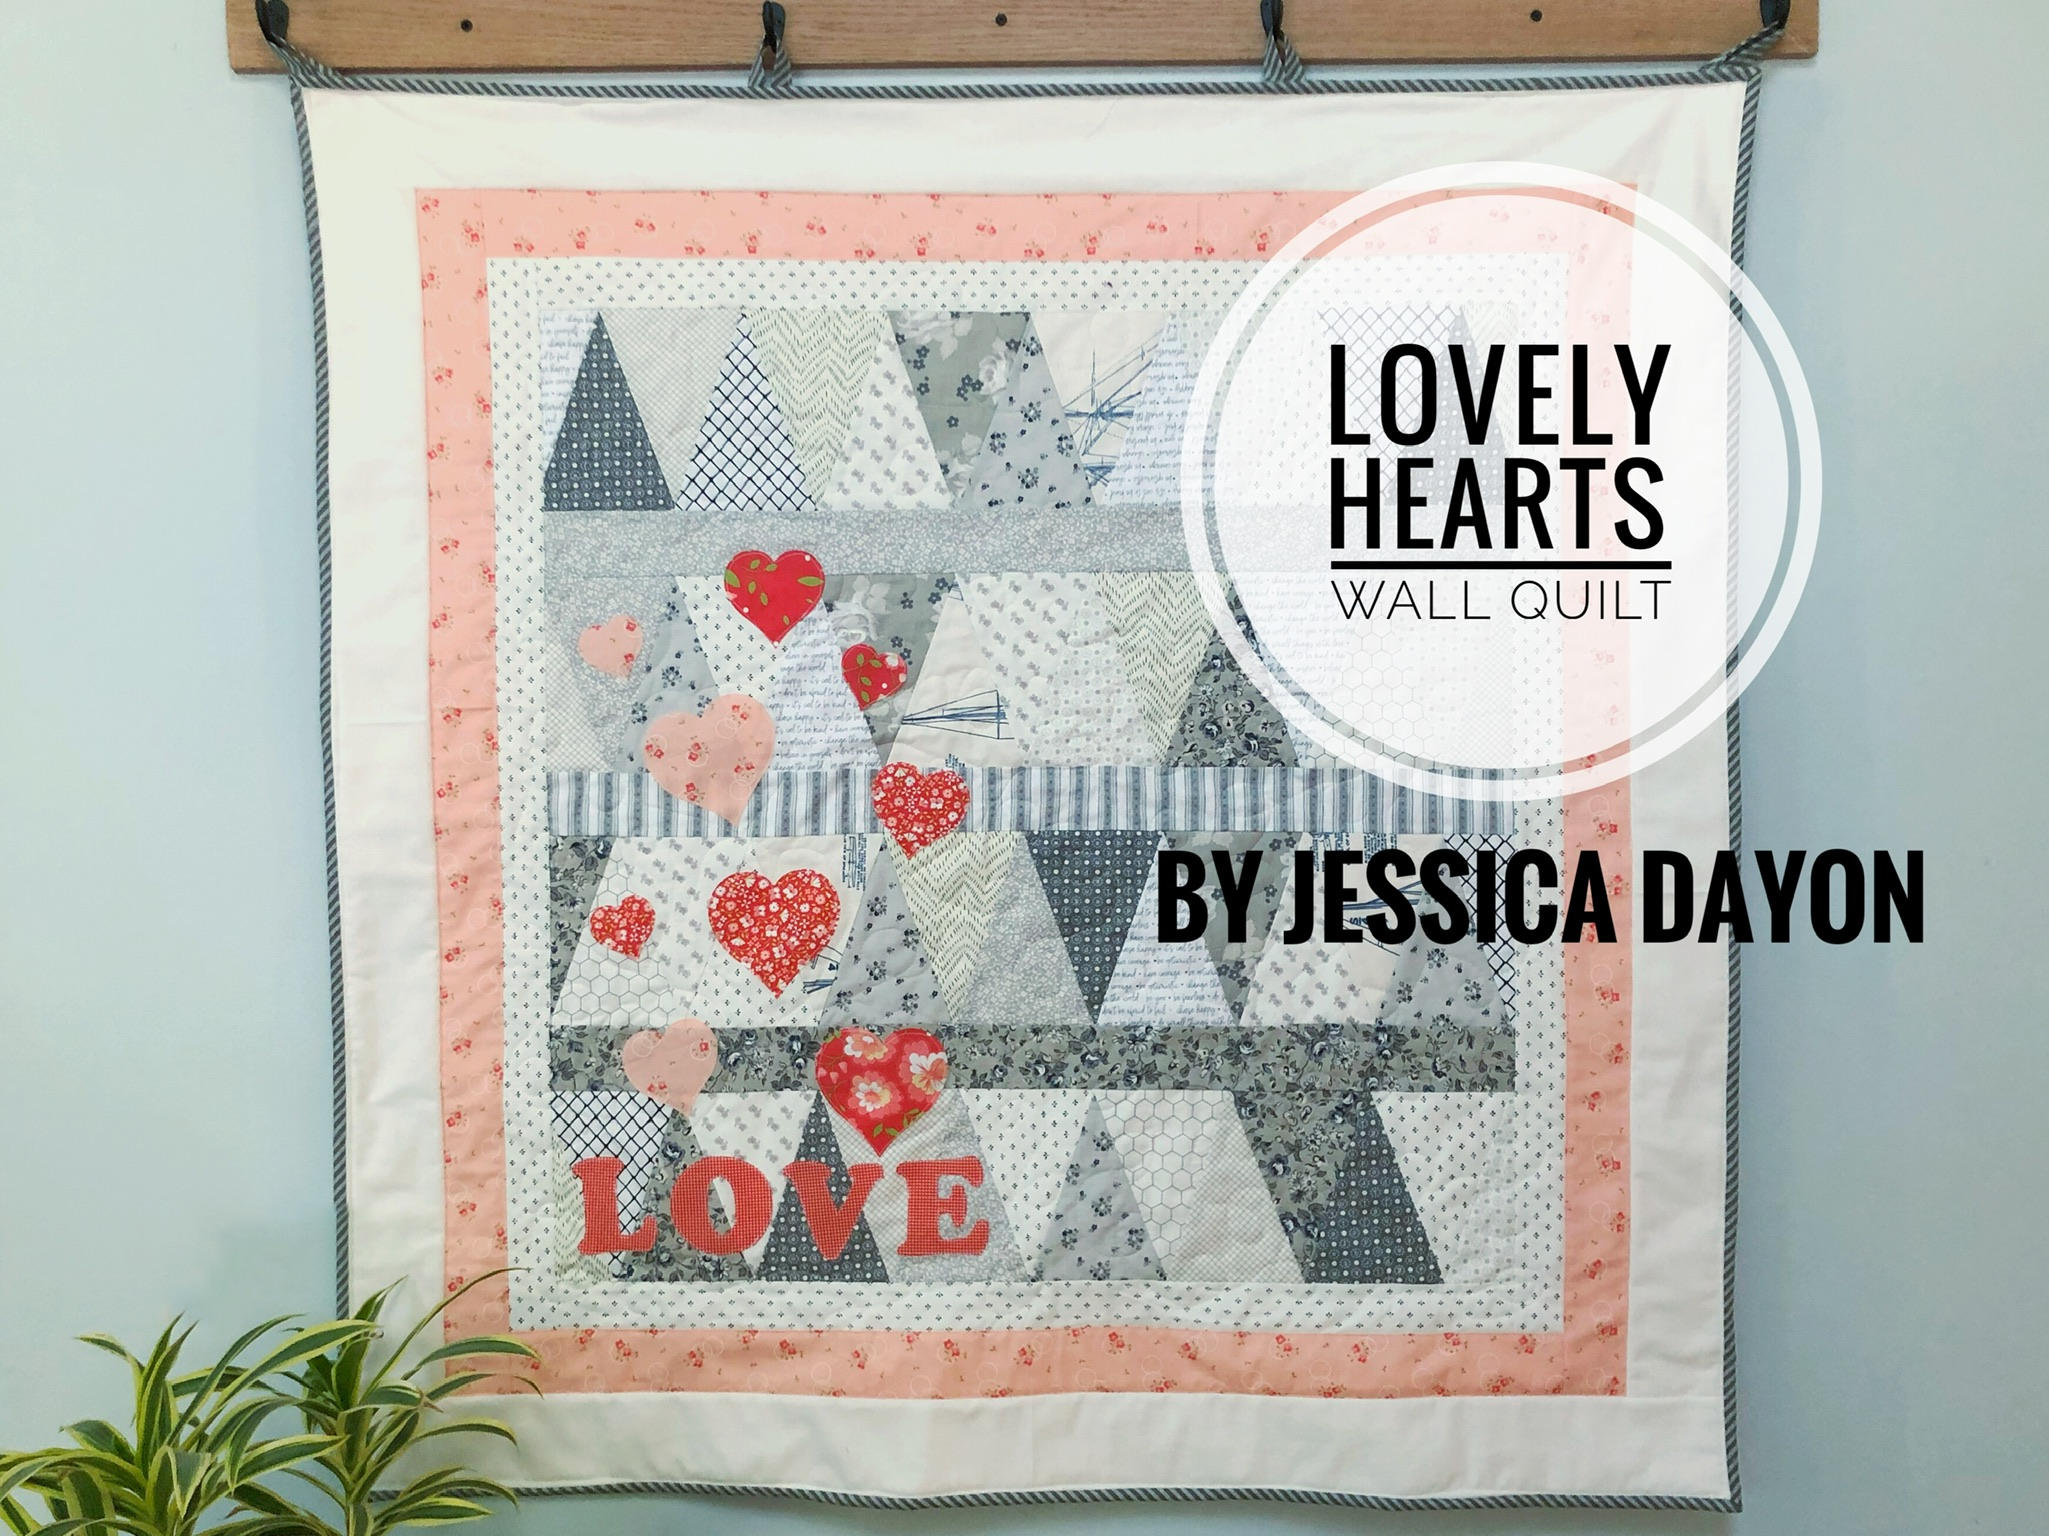 peach grey and white quilted wall hanging made of equilateral triangles and featuring love heart shapes and the word love